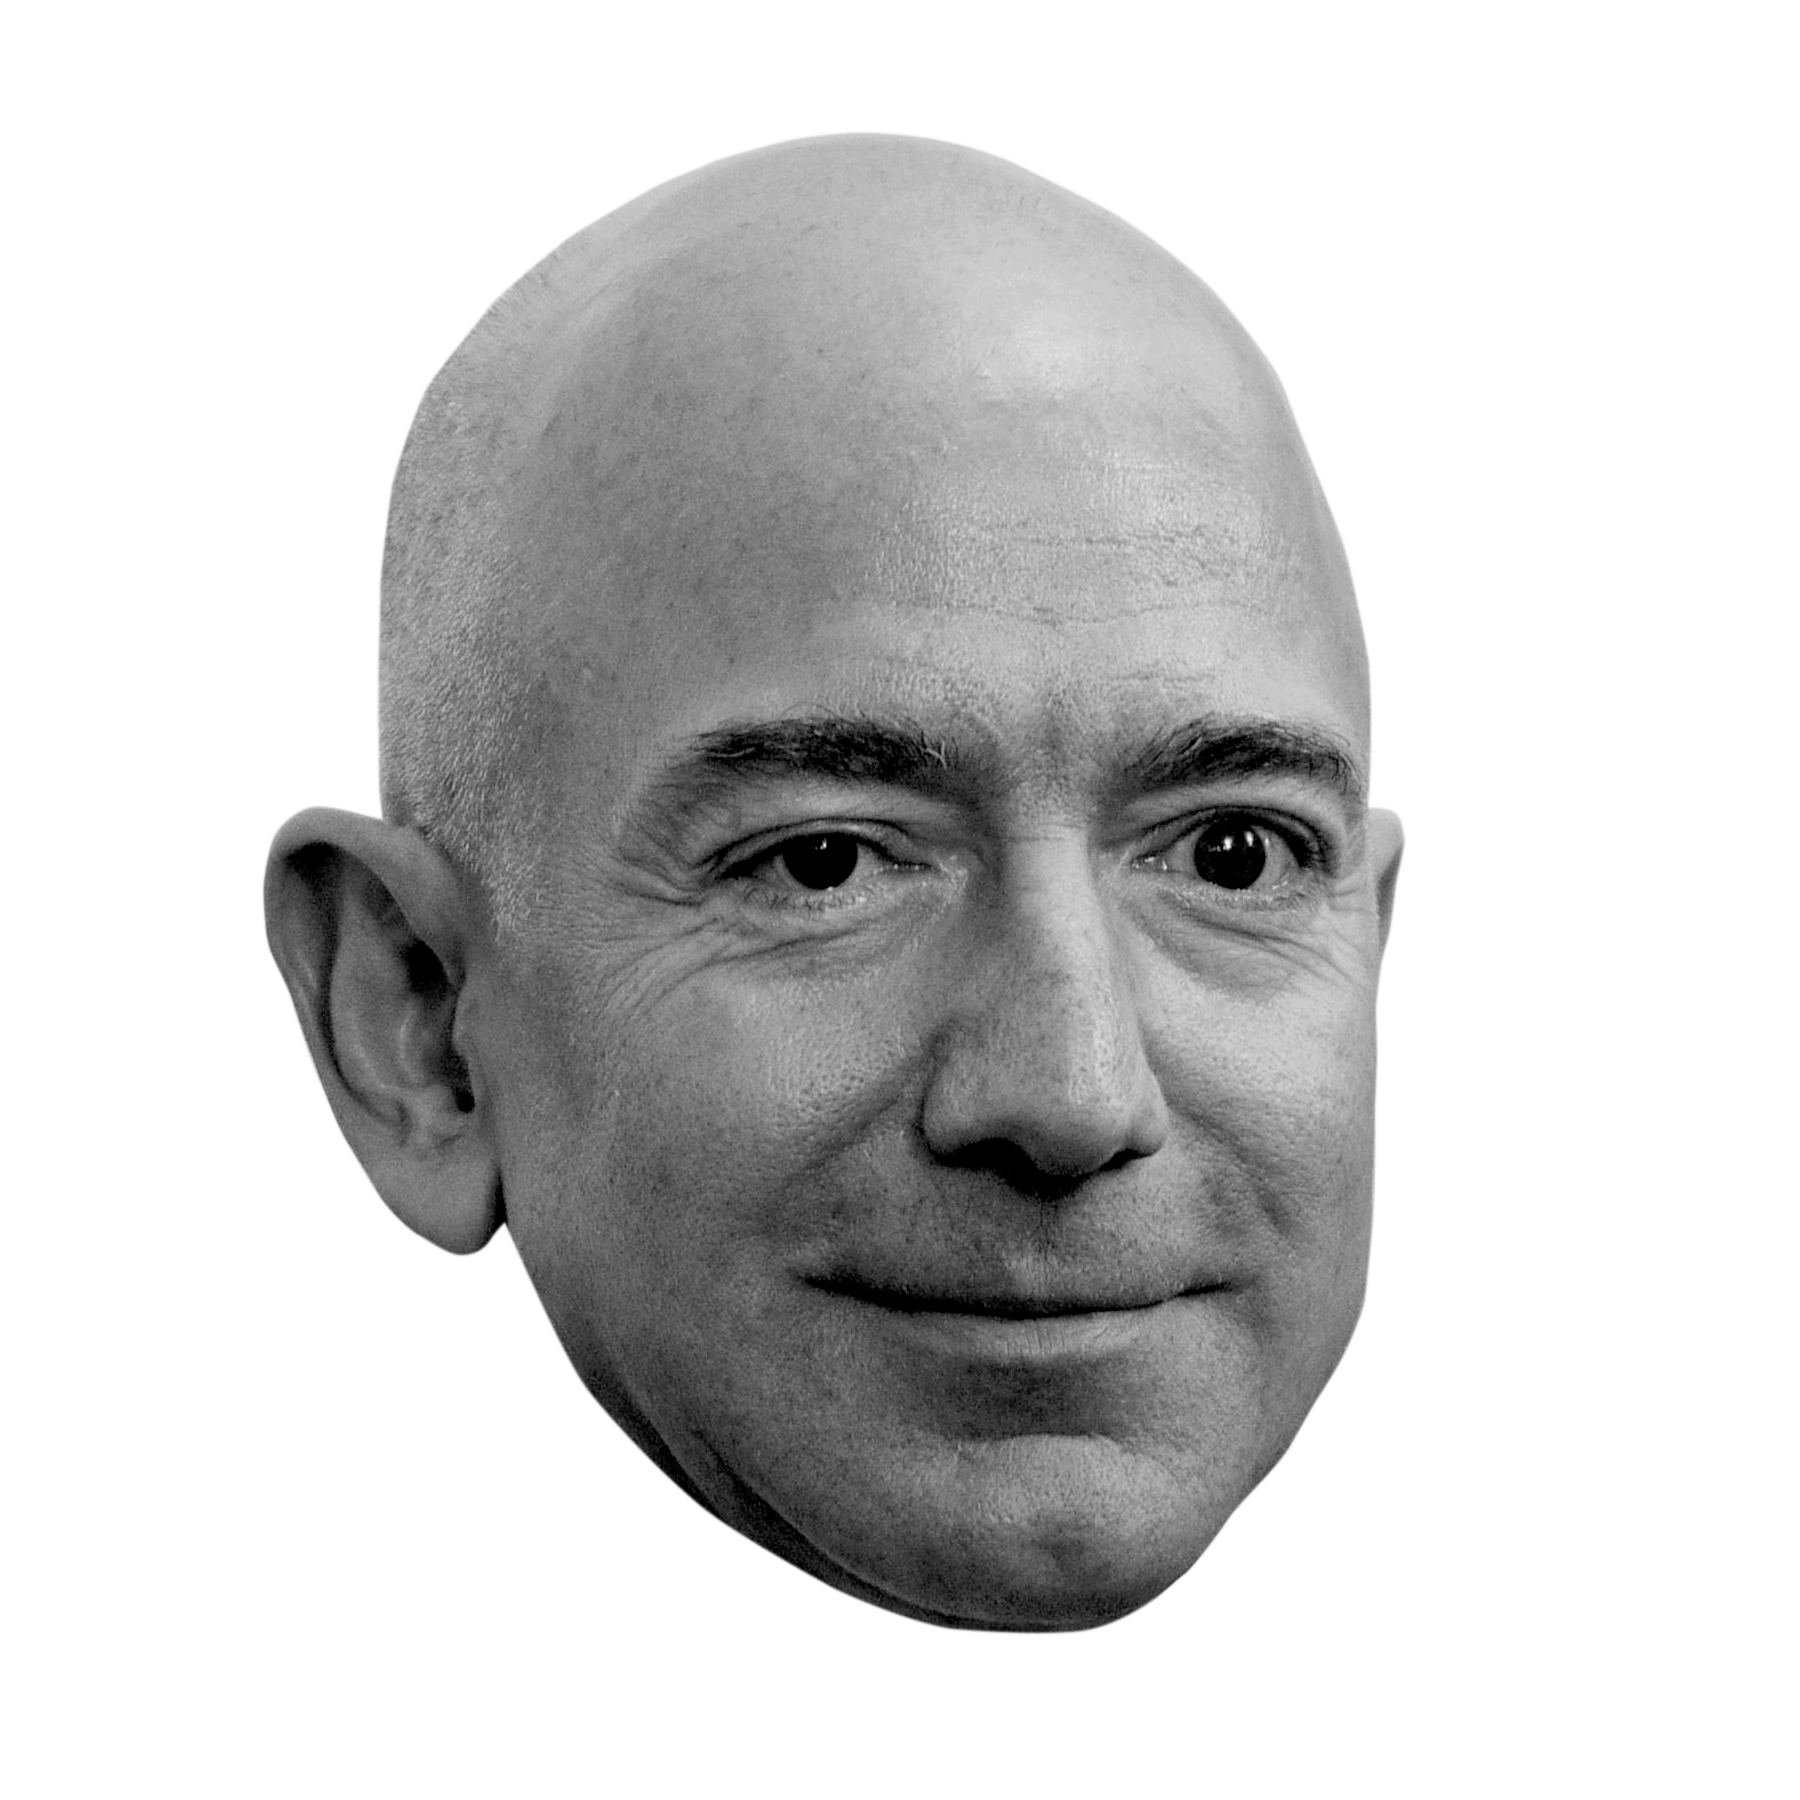 jeff bezos sillo bw - The Secret IRS Files: Trove of Never-Before-Seen Records Reveal How the Wealthiest Avoid Income Tax